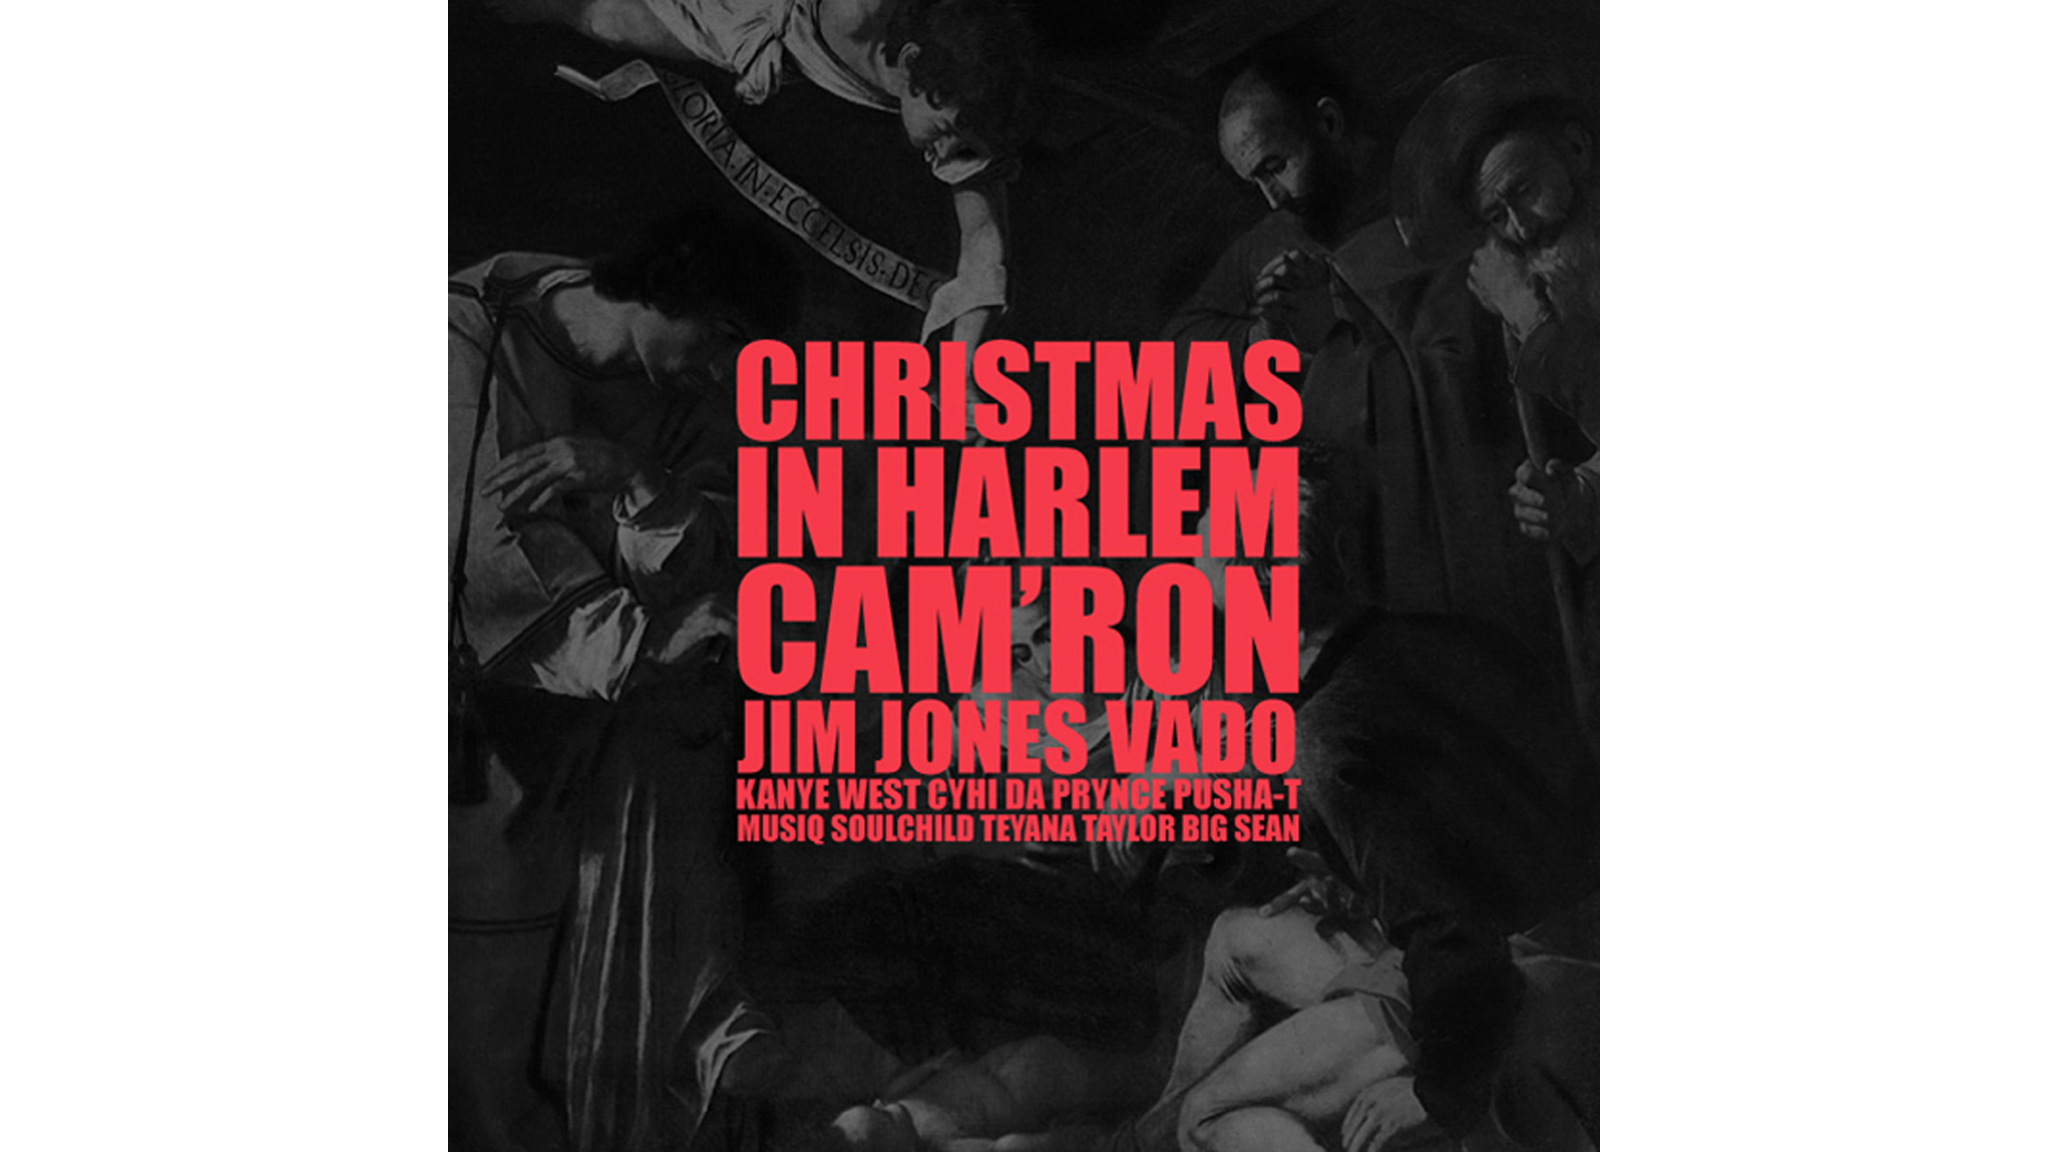 'Christmas in Harlem' – Kanye West featuring Cam'ron, Jim Jones, Vado, Cyhi Da Prynce & Pusha T